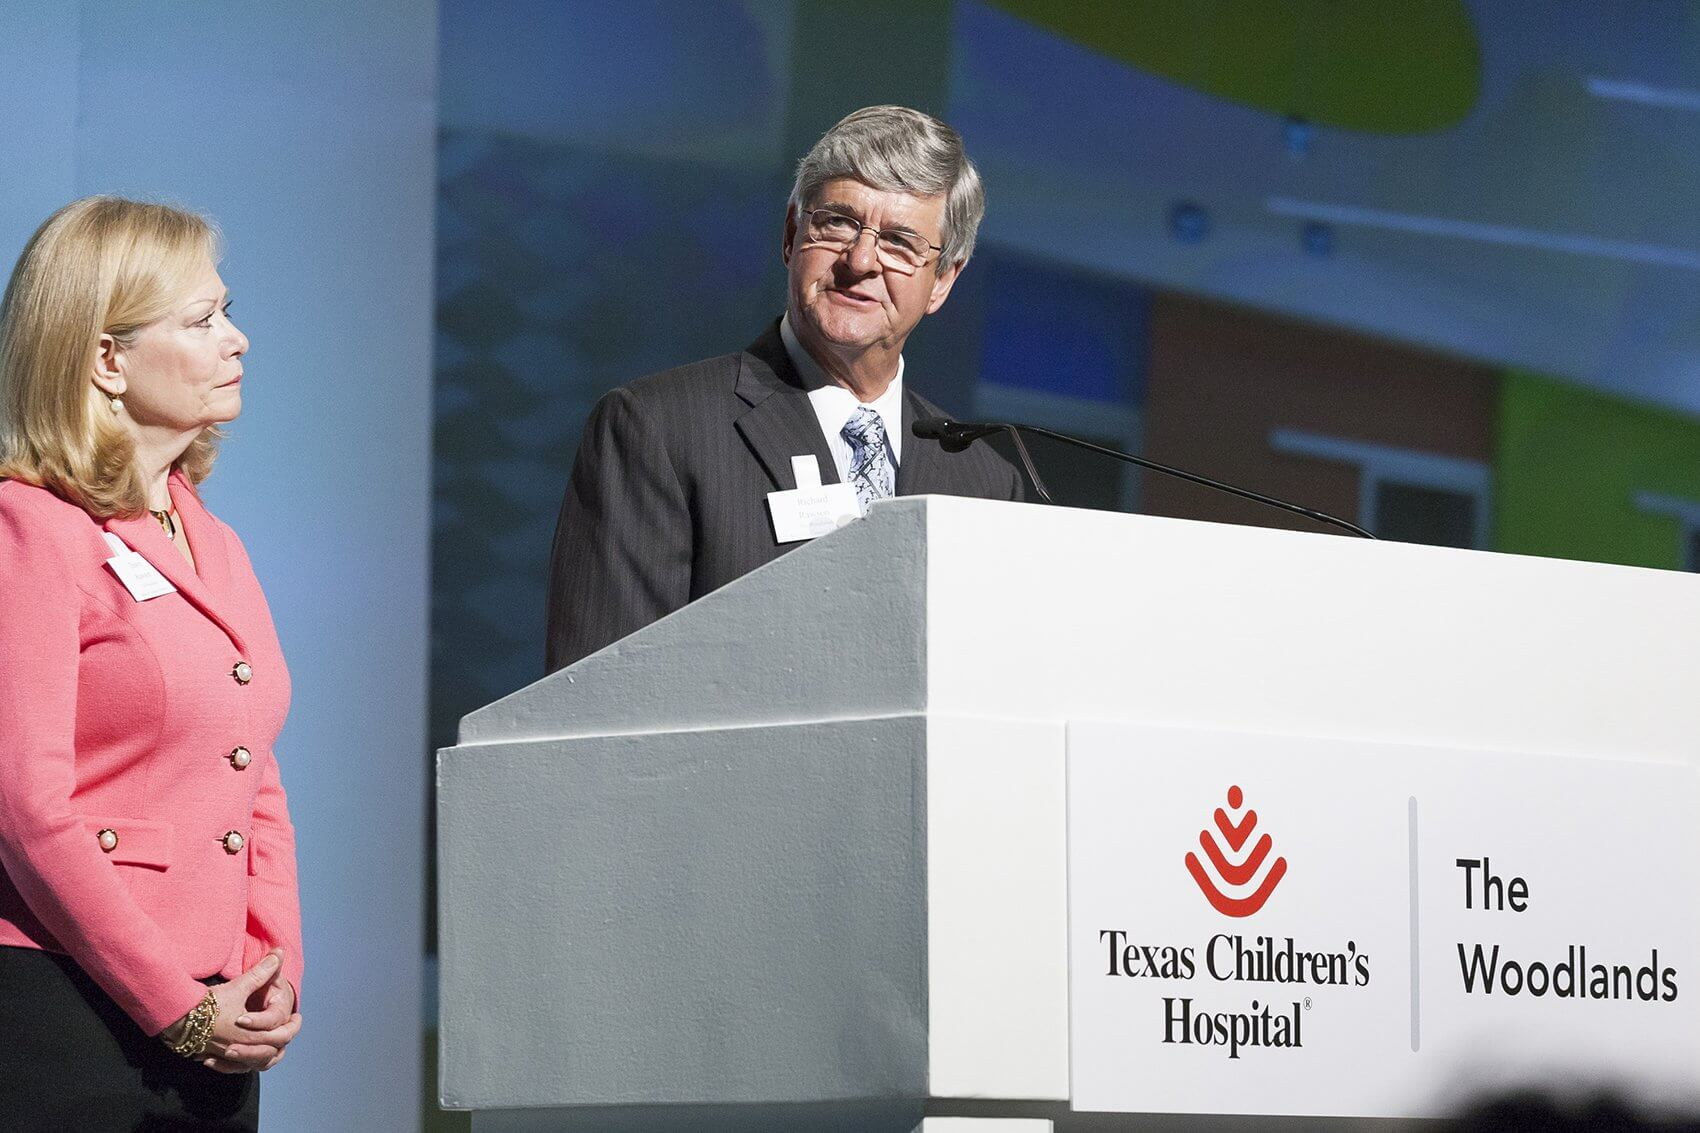 Dawn and Richard Rawson, who recently gave a $1 million gift through the naming of the admissions area at Texas Children's Hospital The Woodlands, speak about the inspiration behind their generosity (Credit: John R. Lewis Photography)